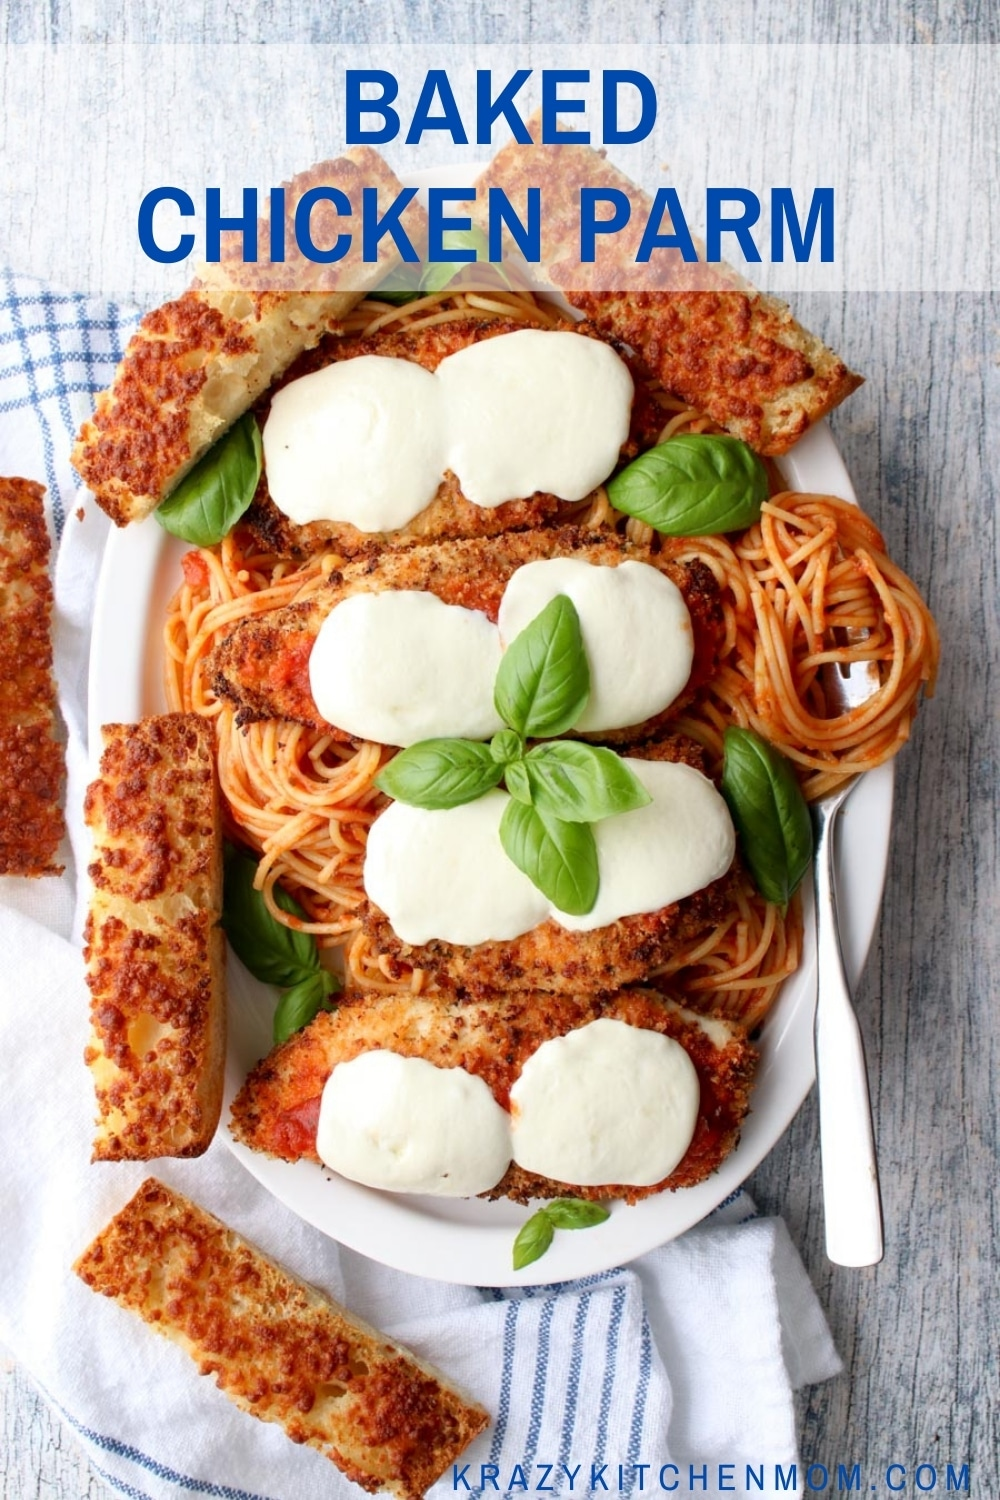 This is a healthier version of traditional chicken parmesan because it's baked and not fried. The chicken is crispy on the outside and moist and tender on the inside.  via @krazykitchenmom